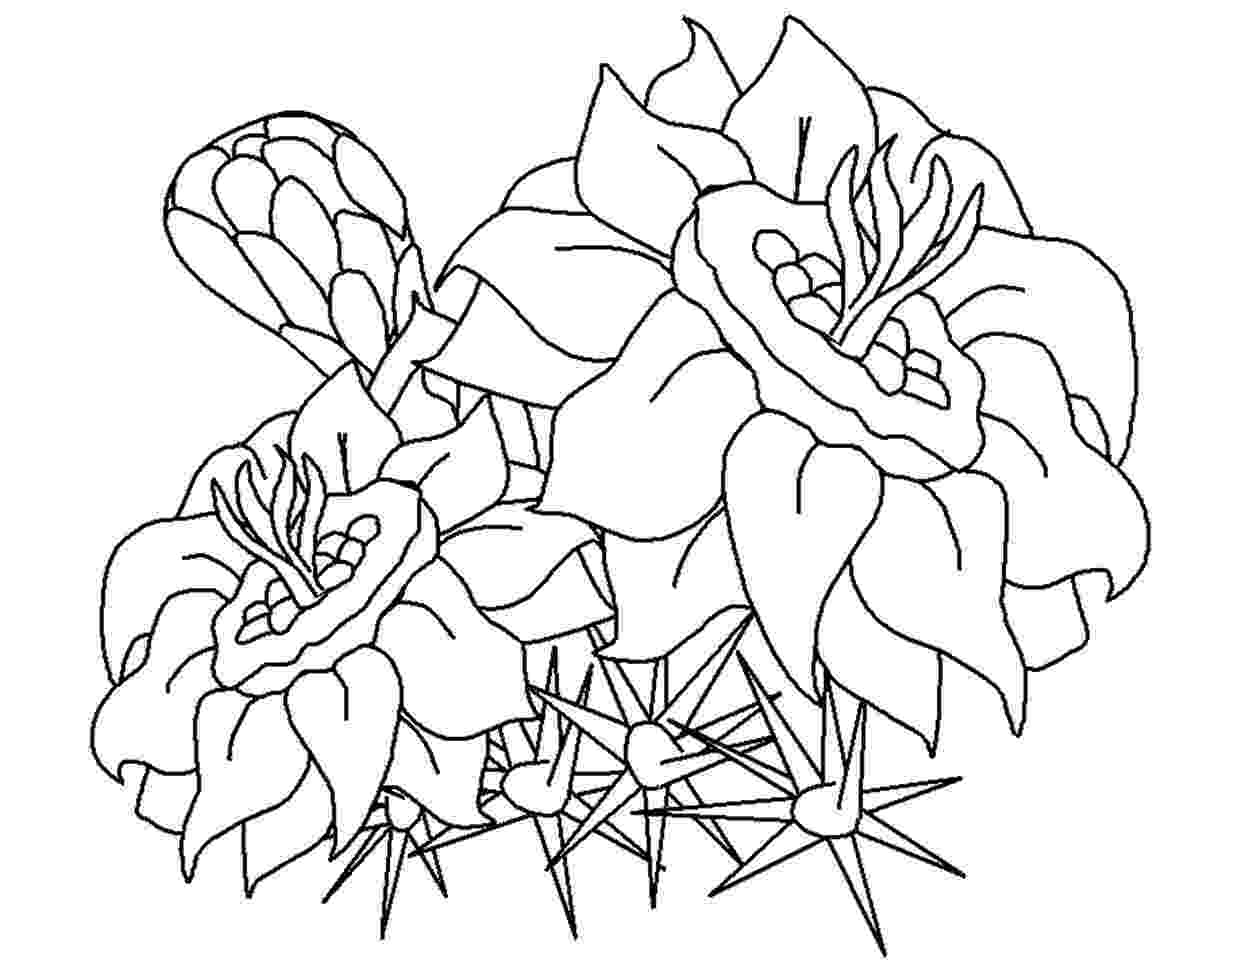 free flower pictures to print and color free printable flower coloring pages for kids best flower pictures color to print free and